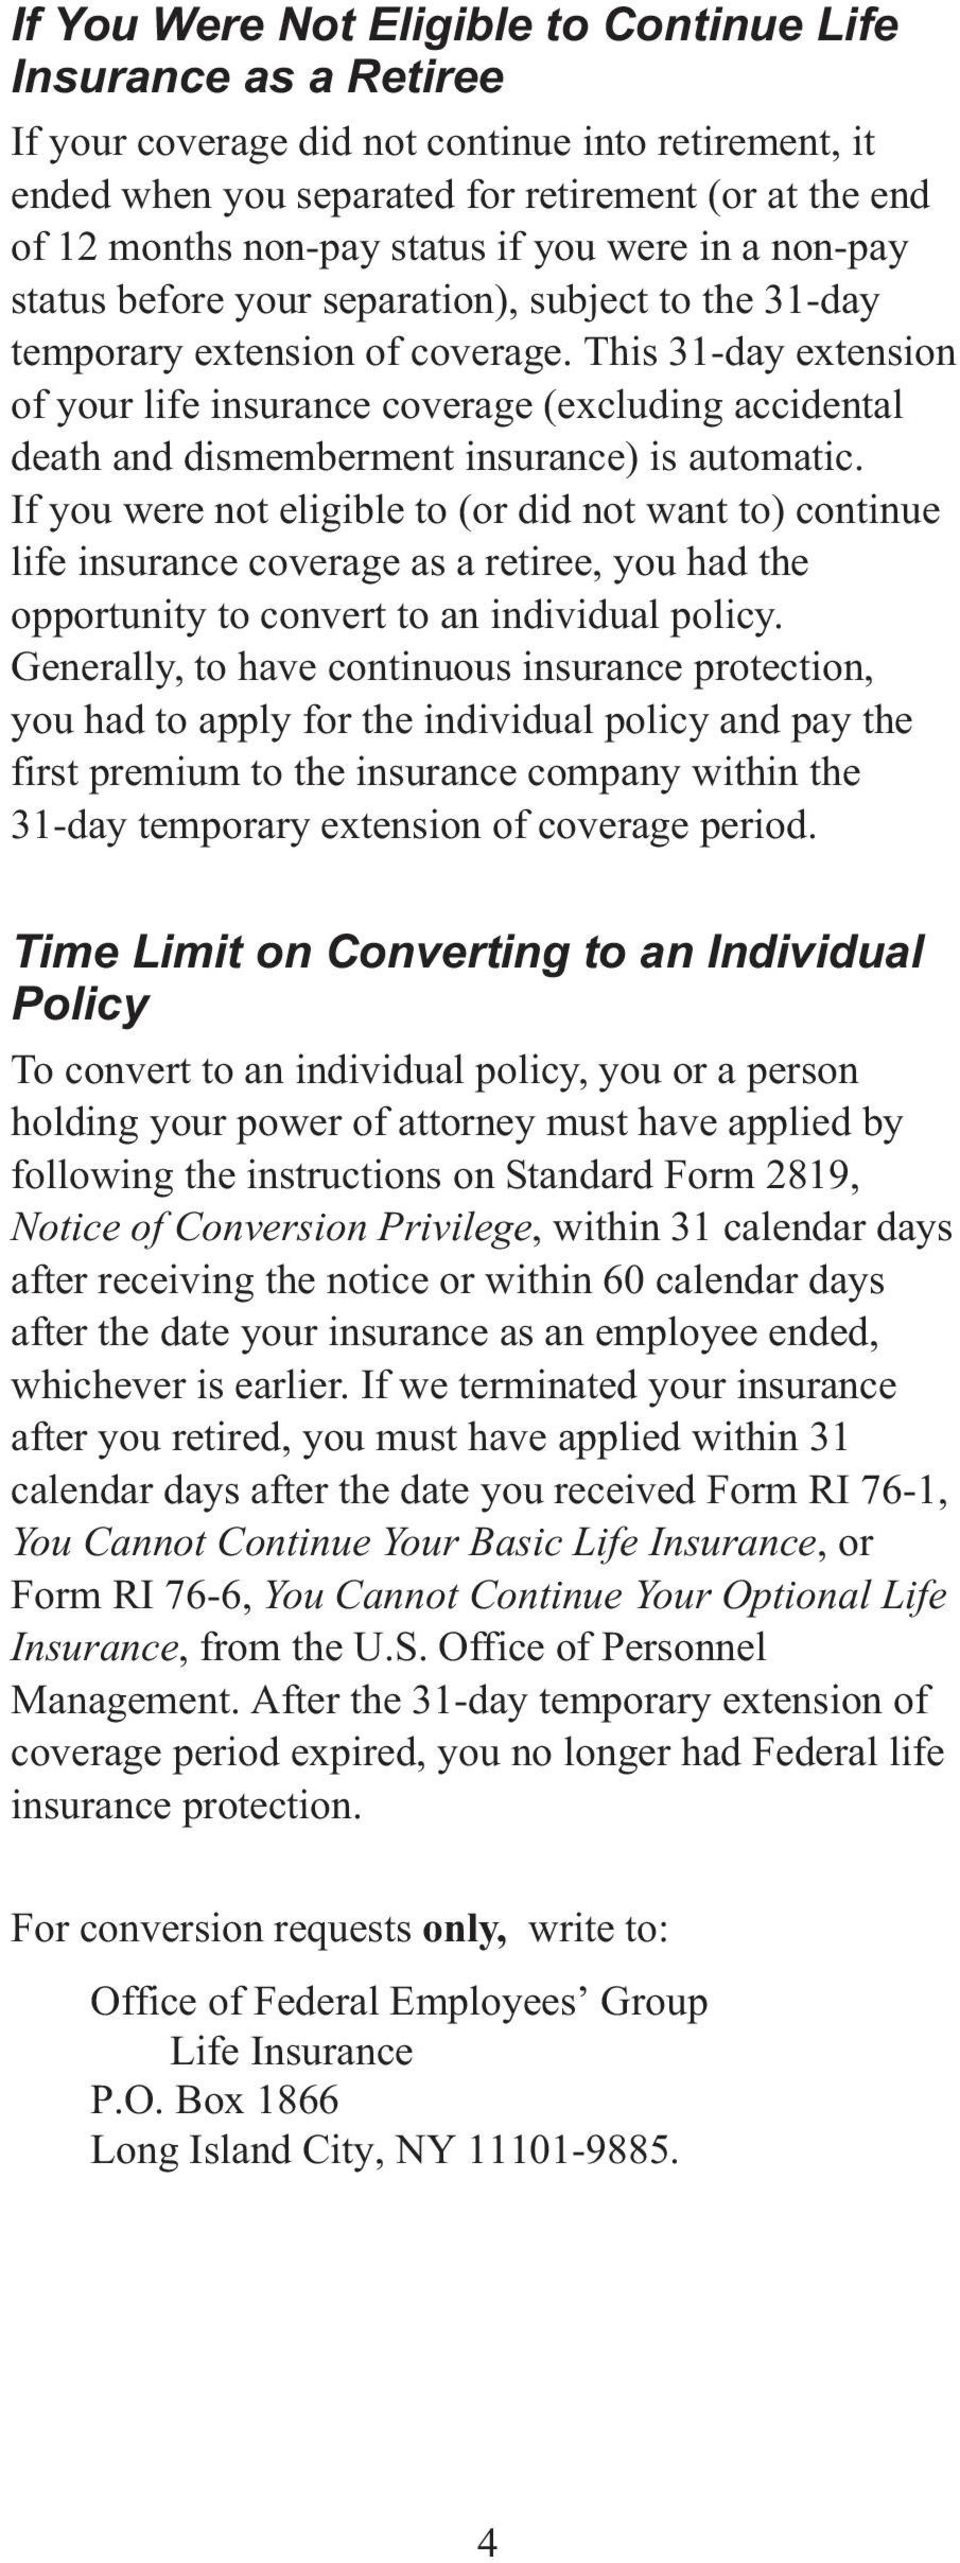 This 31-day extension of your life insurance coverage (excluding accidental death and dismemberment insurance) is automatic.